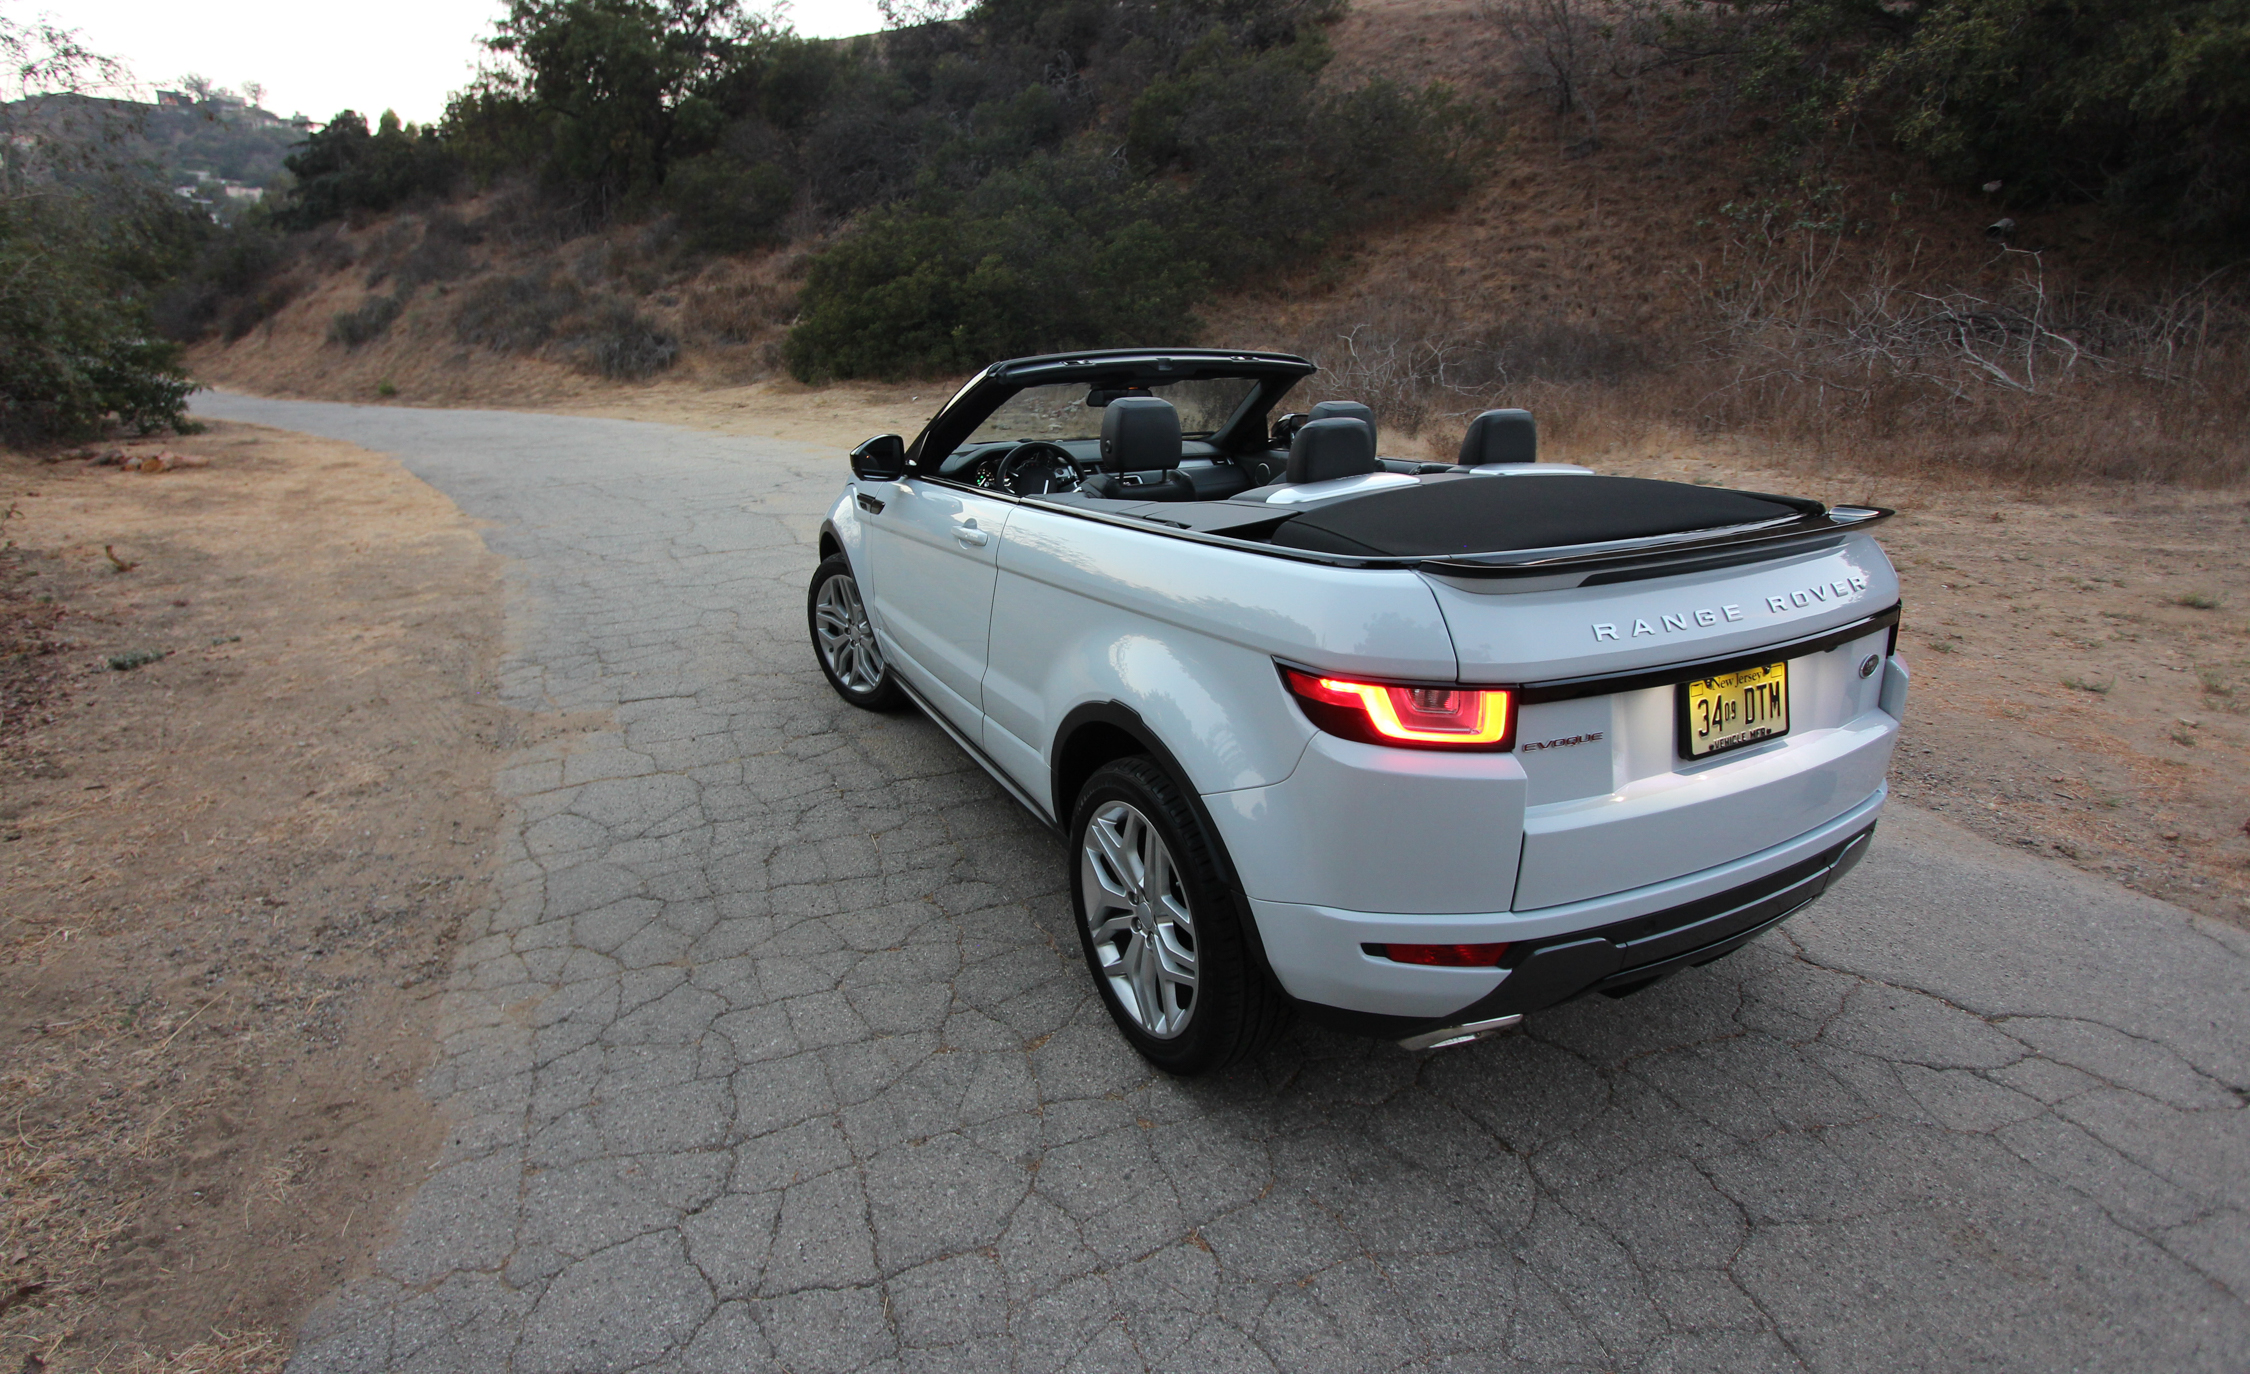 2017 Land Rover Range Rover Evoque Convertible Exterior Open Roof Preview (Photo 5 of 14)